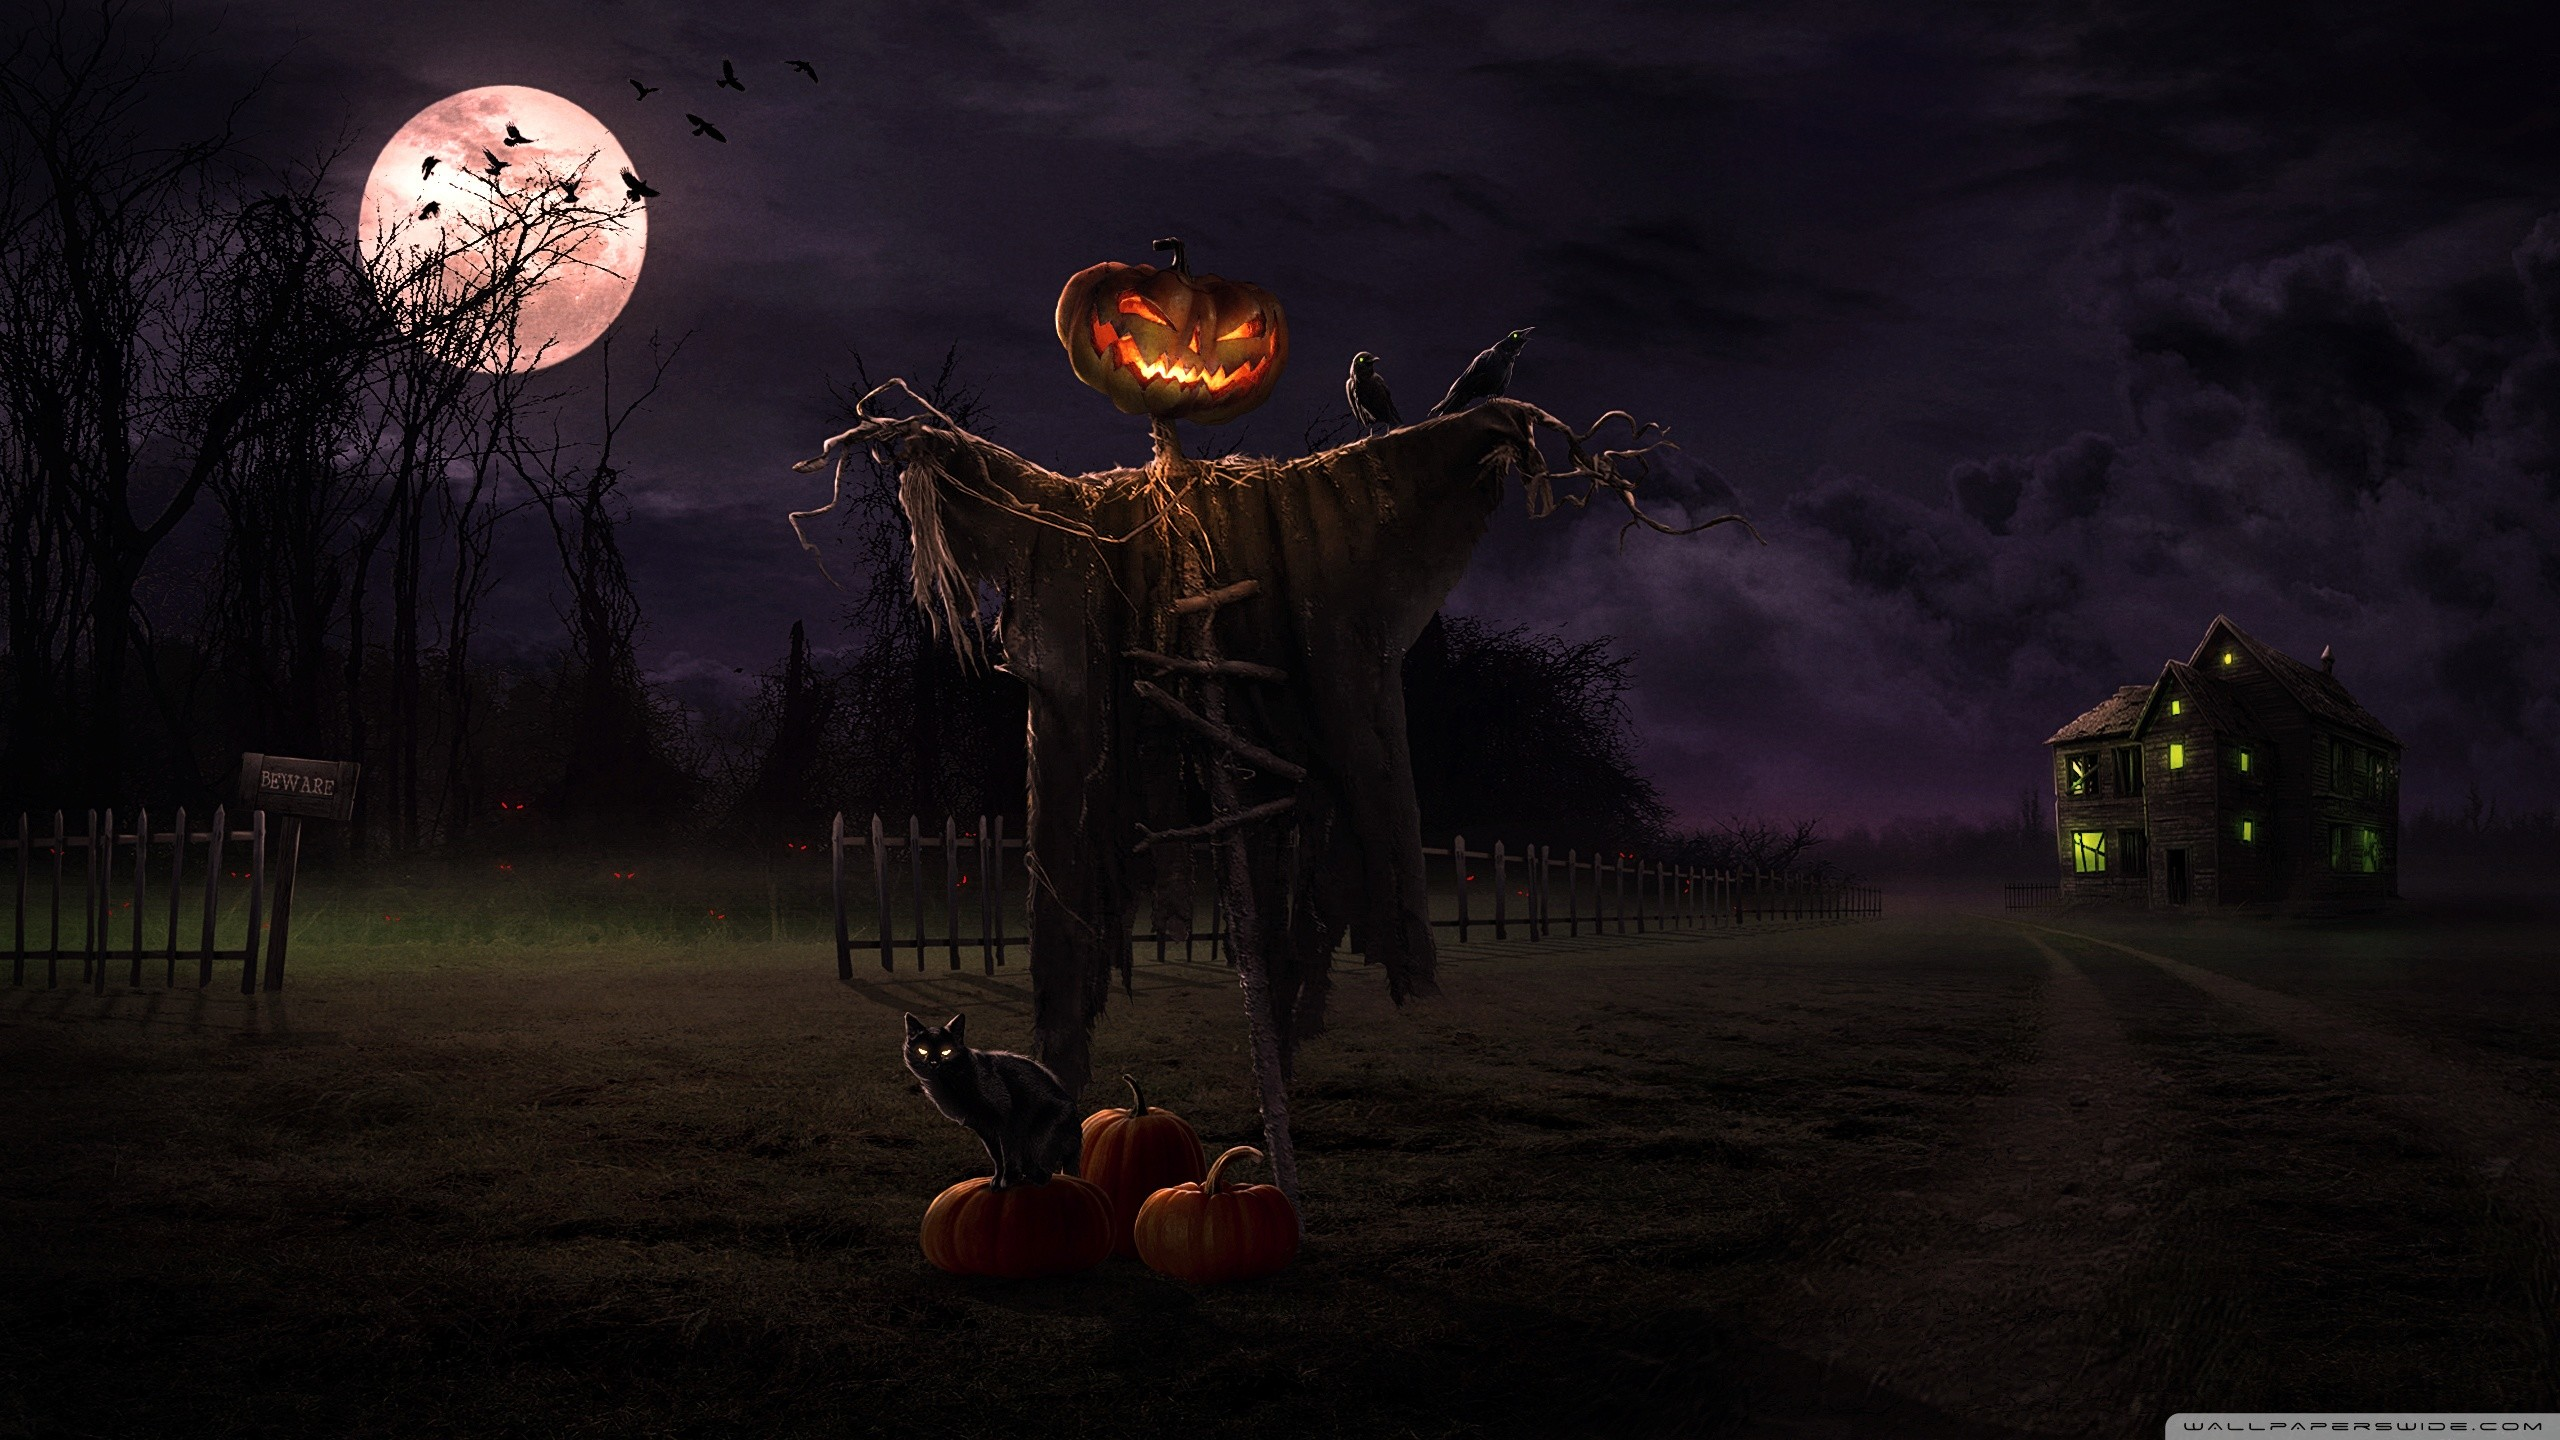 Scary Halloween Wallpapers and Screensavers 58 images 2560x1440